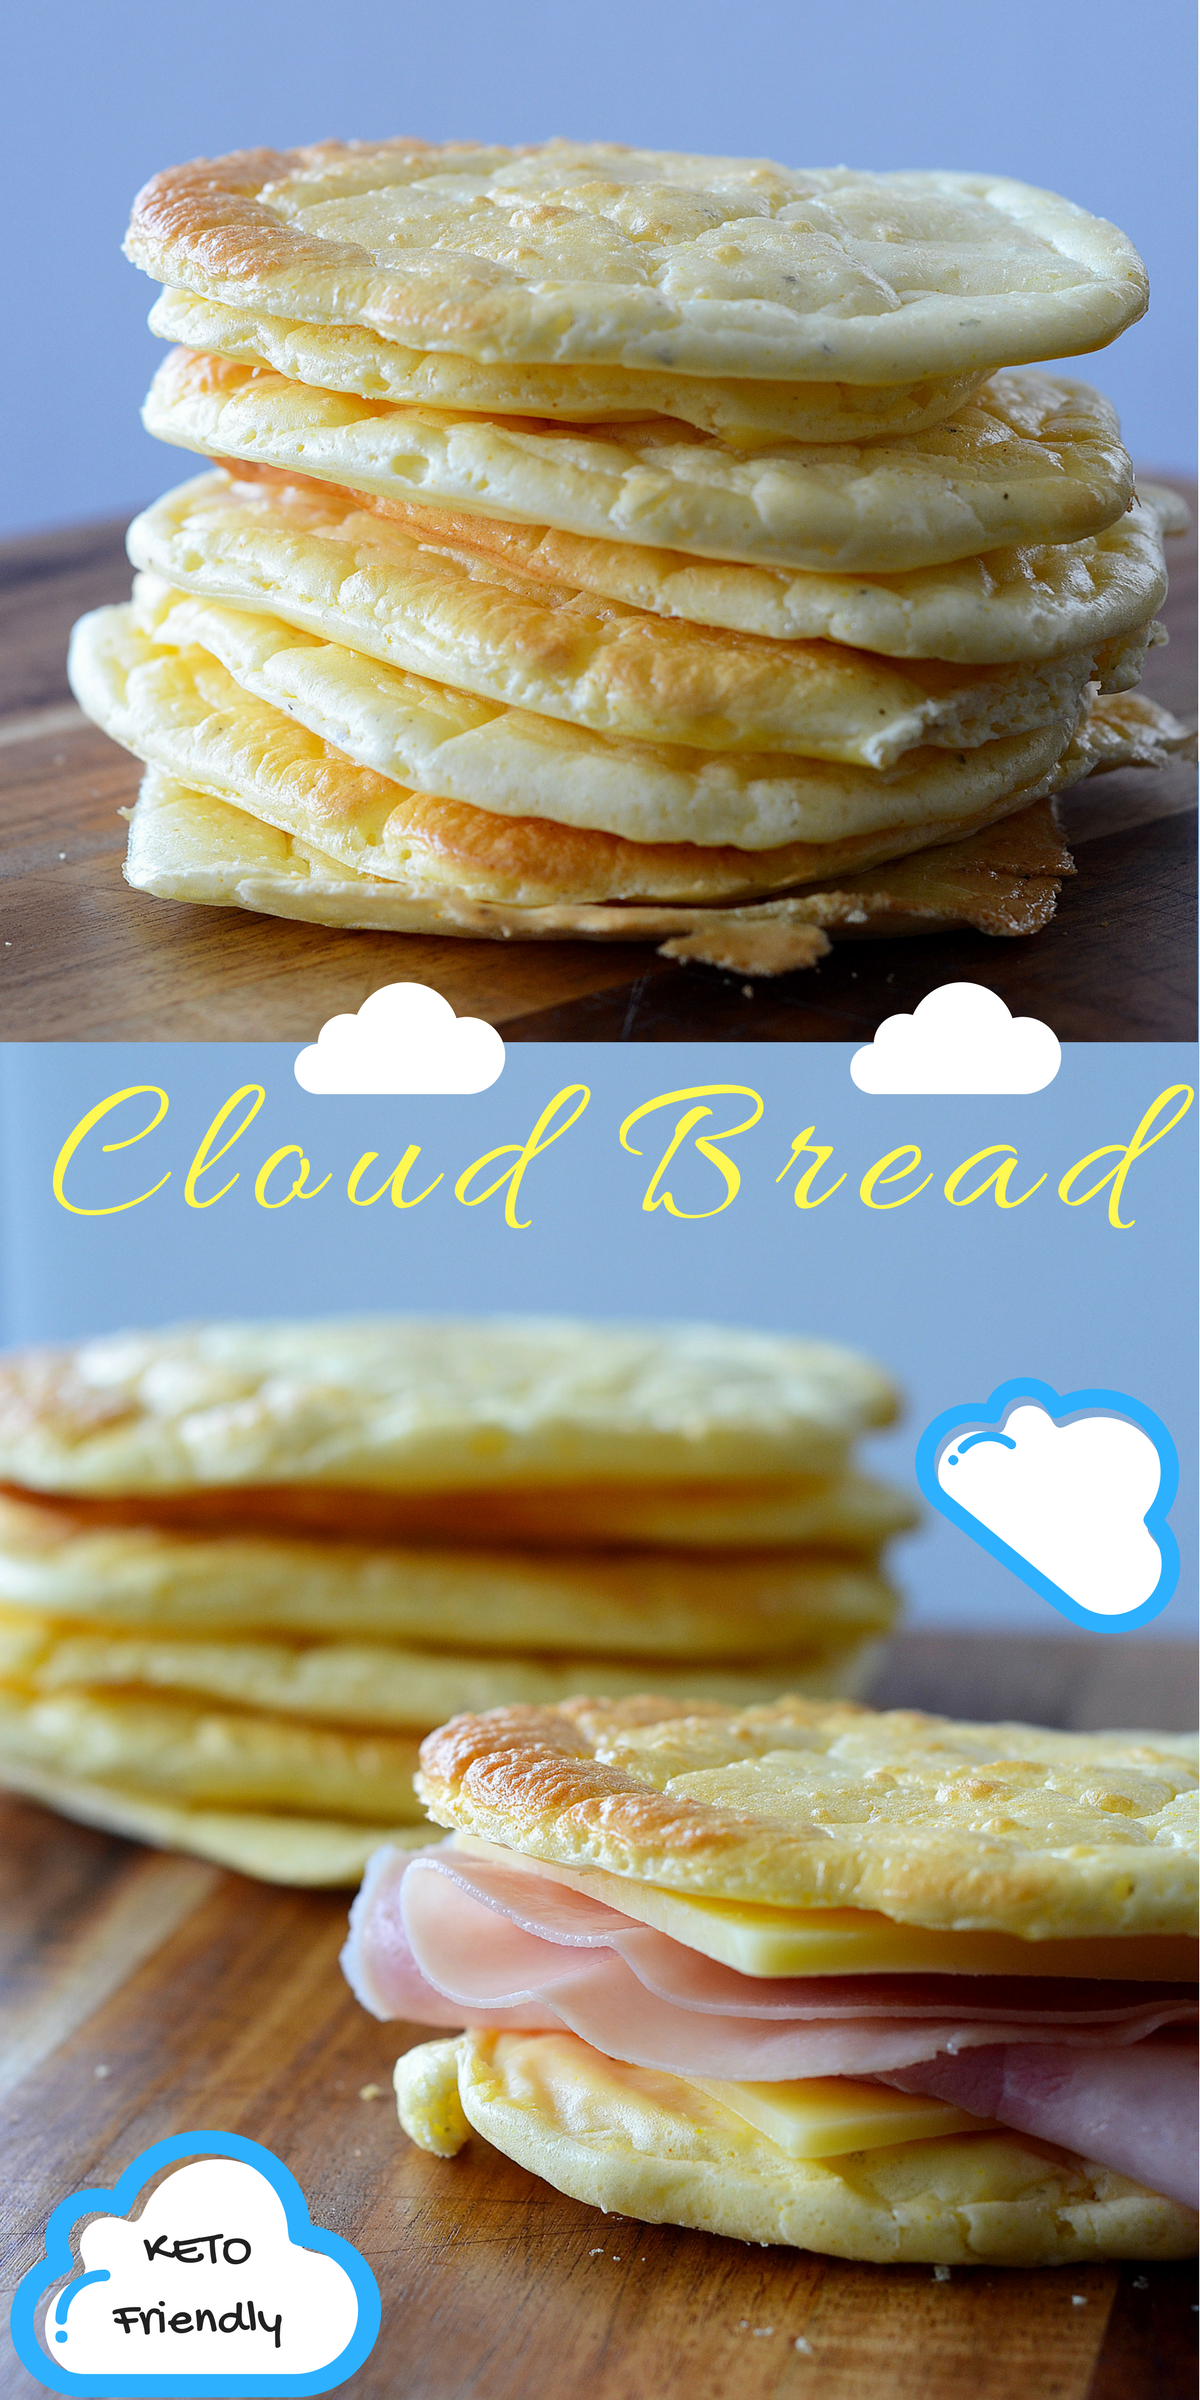 Keto Cloud Bread - Low Carb Burger Buns